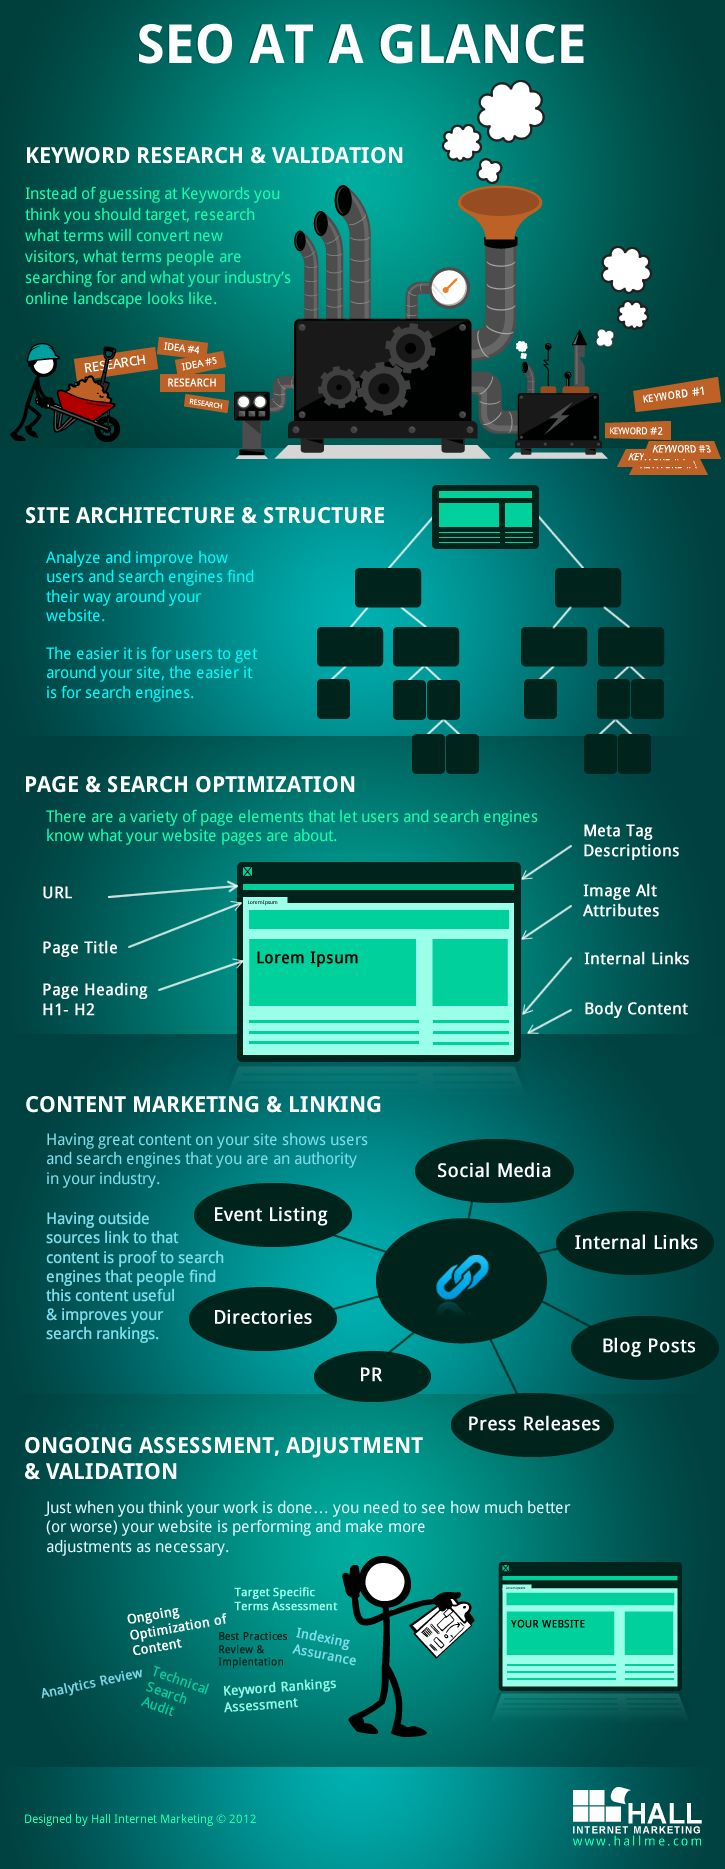 SEO at a glance #infographic